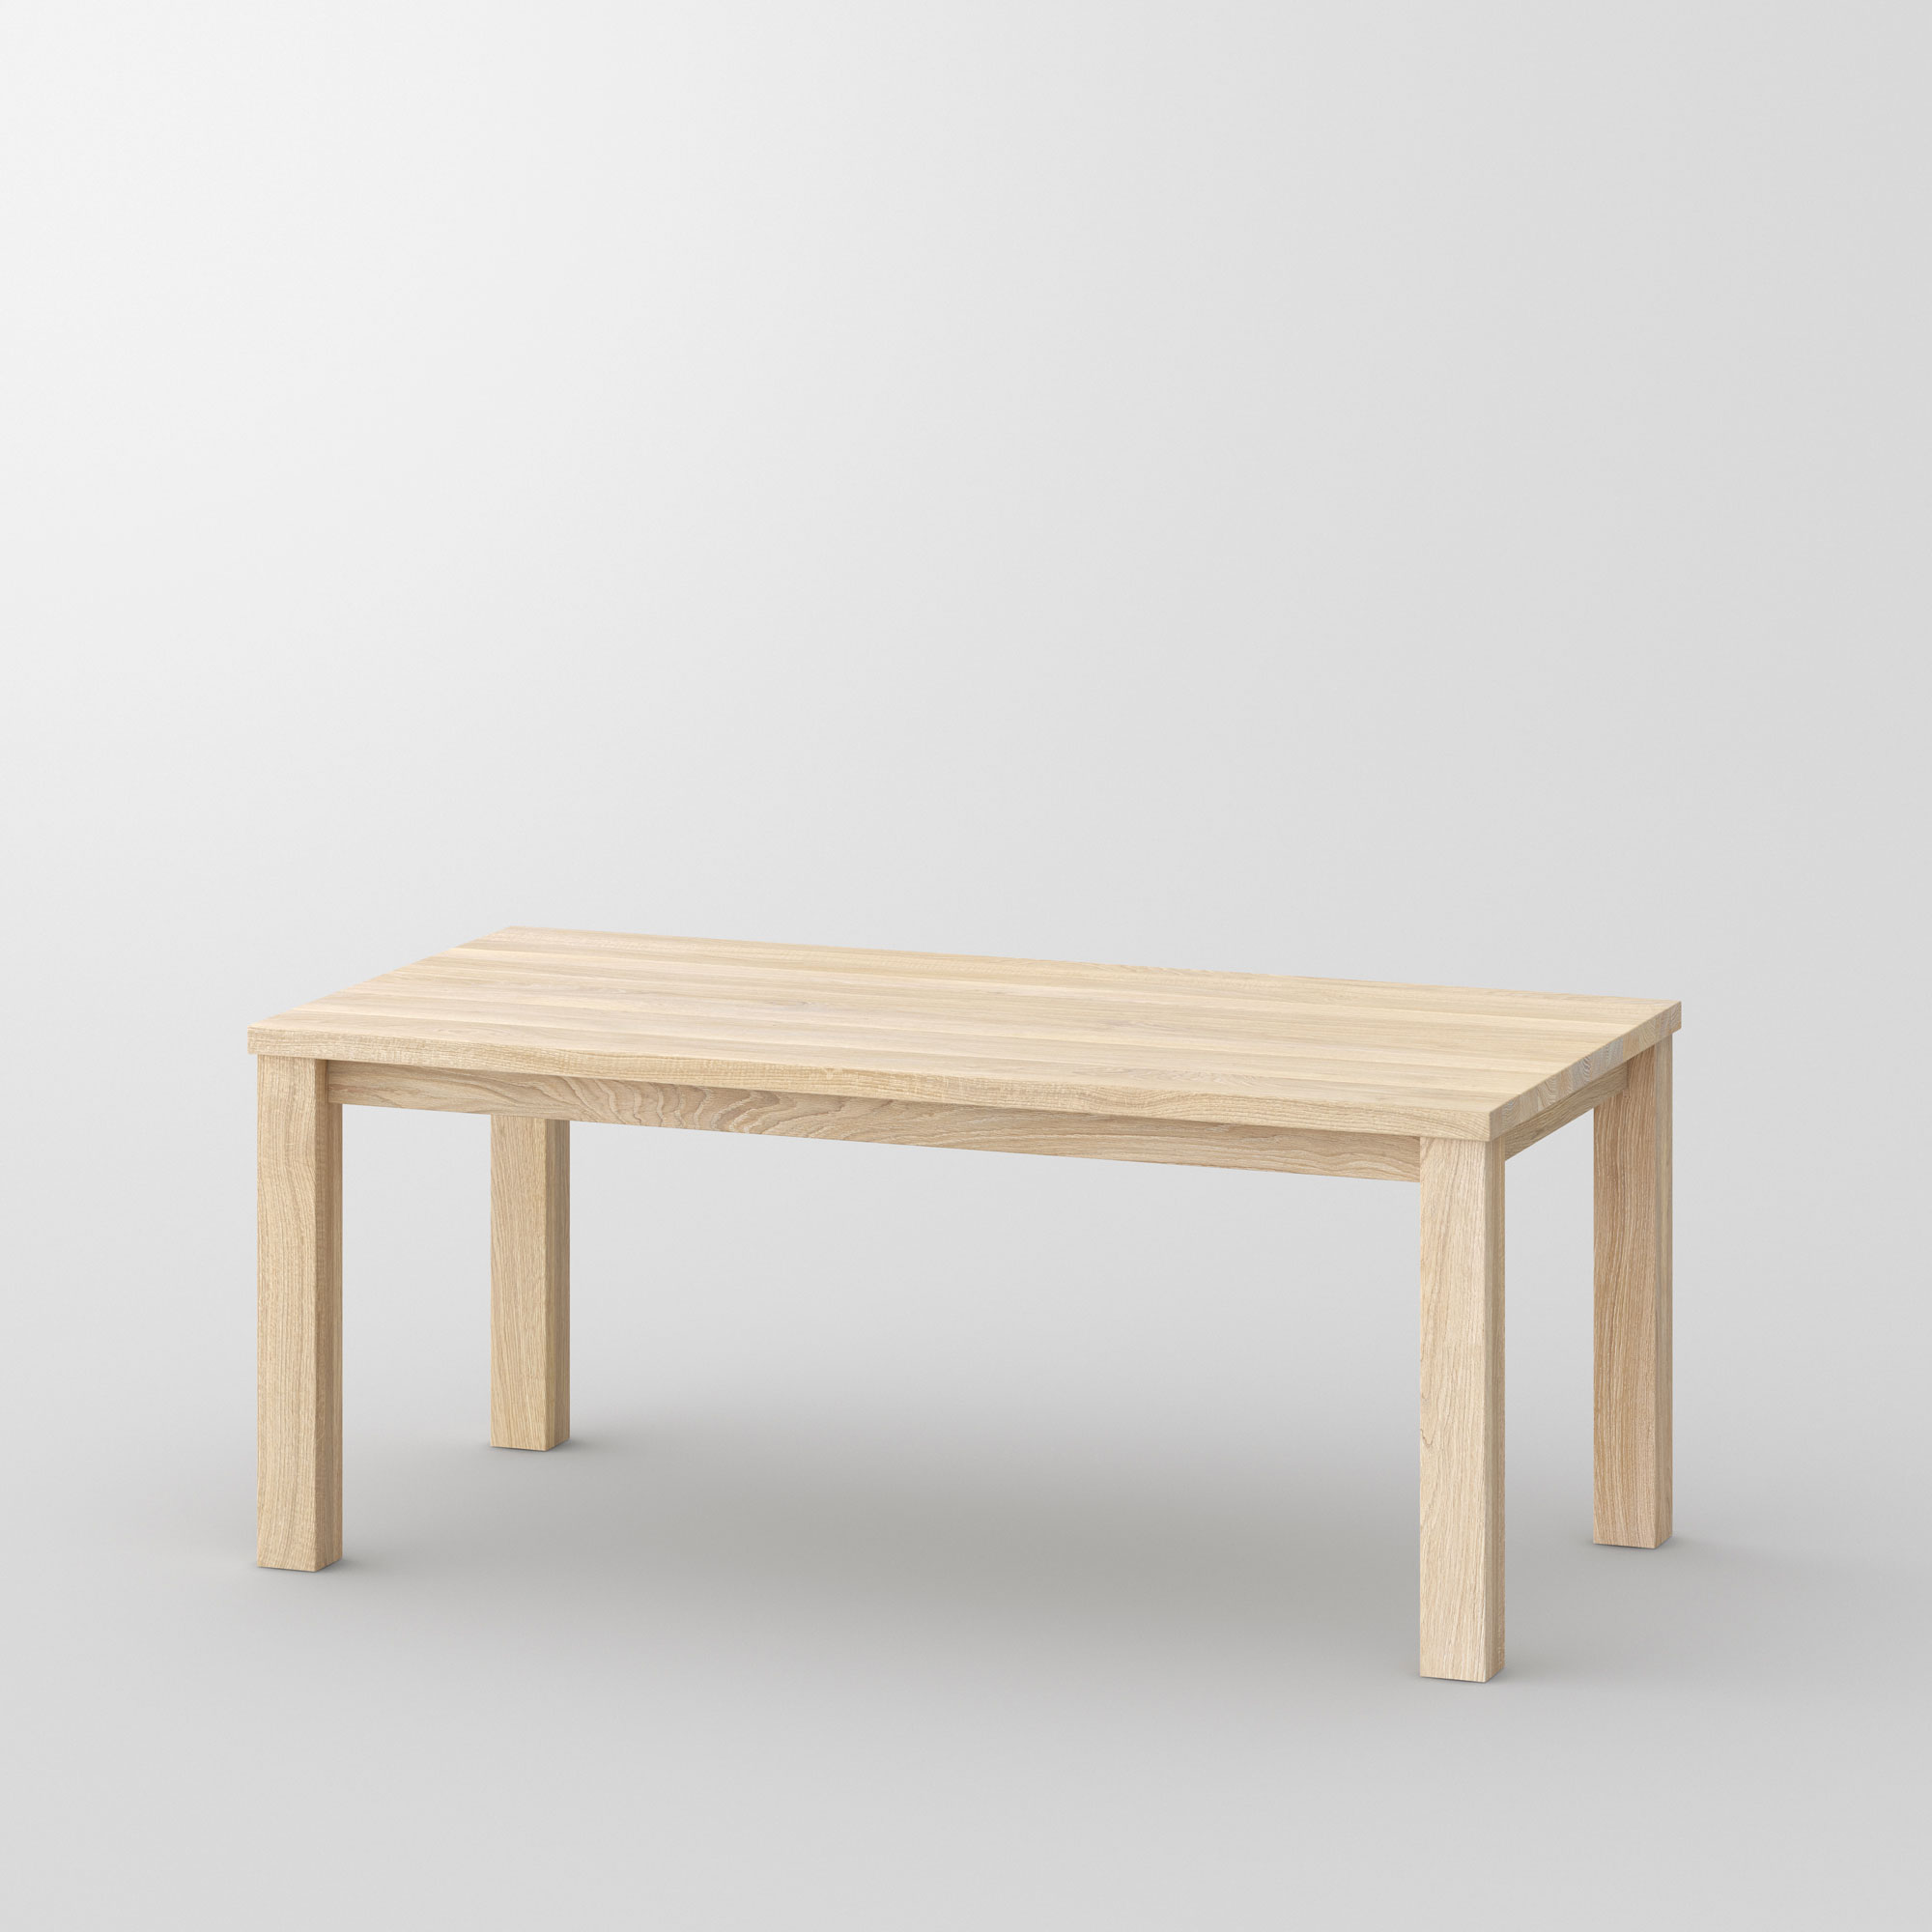 Tailor-Made Solid Wood Table FORTE 4 B9X9 cam1 custom made in solid wood by vitamin design